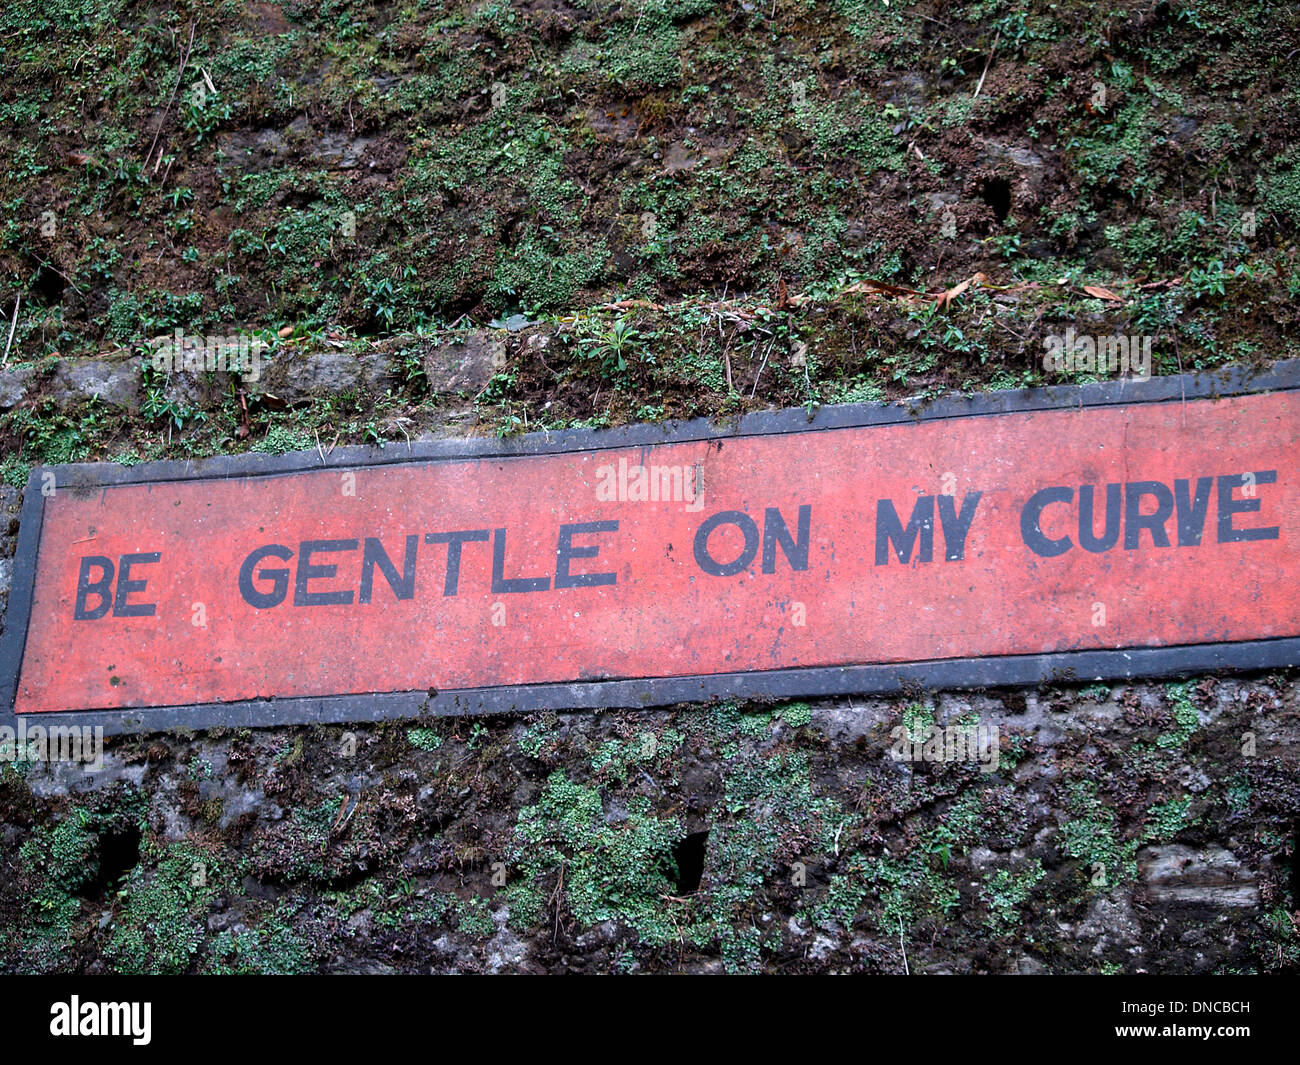 India's humorous road signs - Stock Image